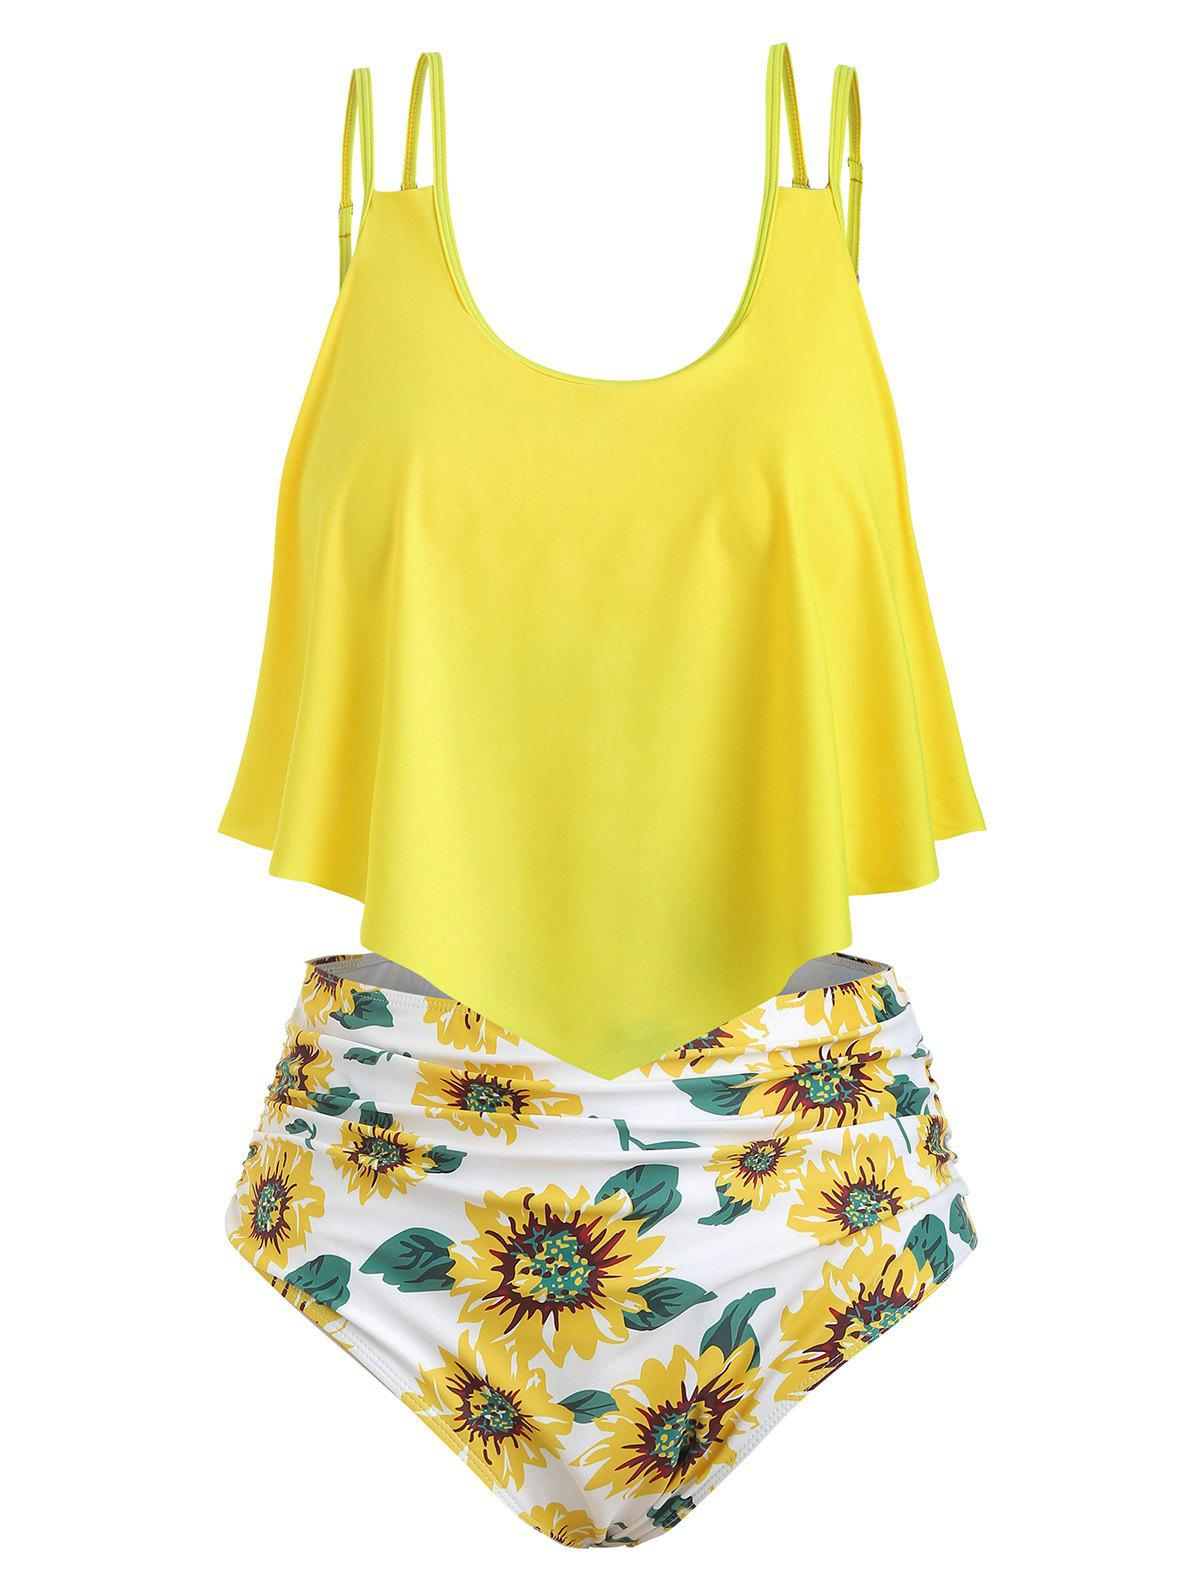 Sunflower Contrast Overlay Plus Size Tankini Set - YELLOW 2X